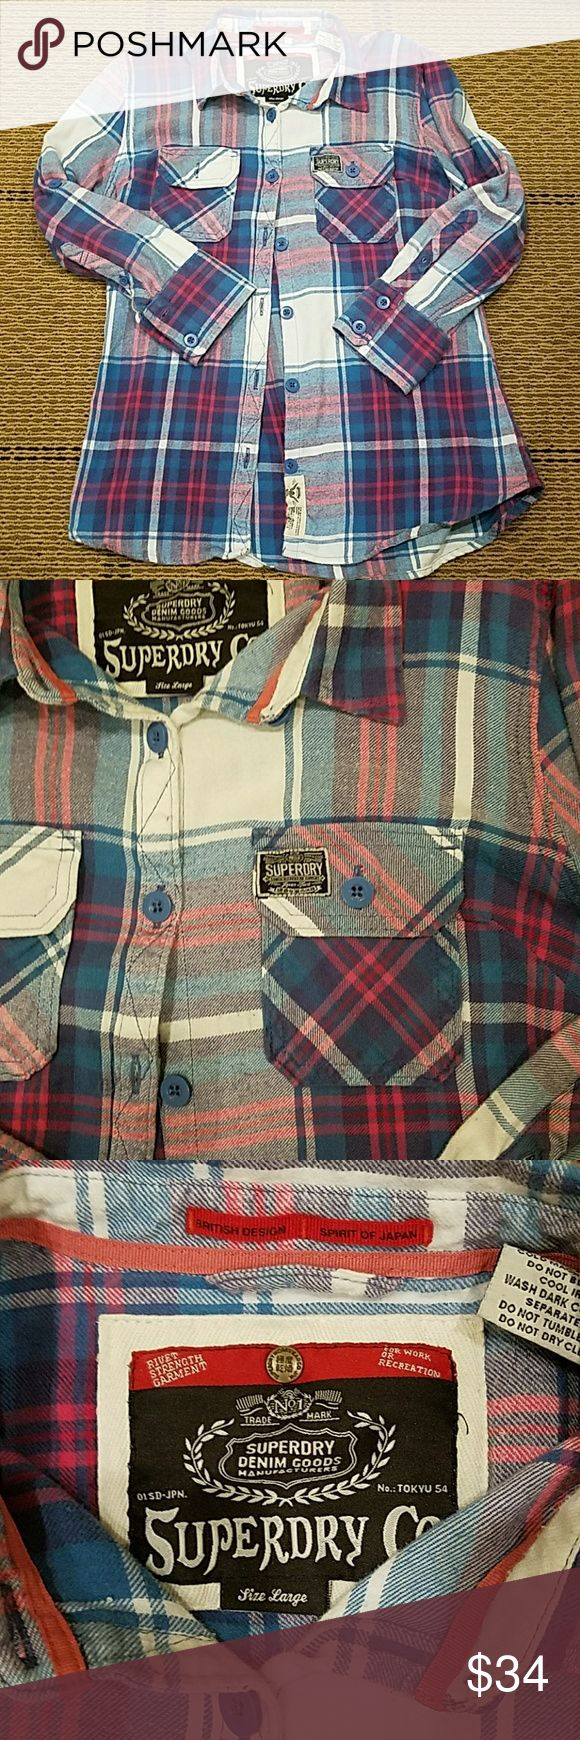 Superdry long sleeve button down shirt Blue and pink long sleeve button down shirt.  By Superdry. In EUC. Medium weight. Superdry Tops Button Down Shirts